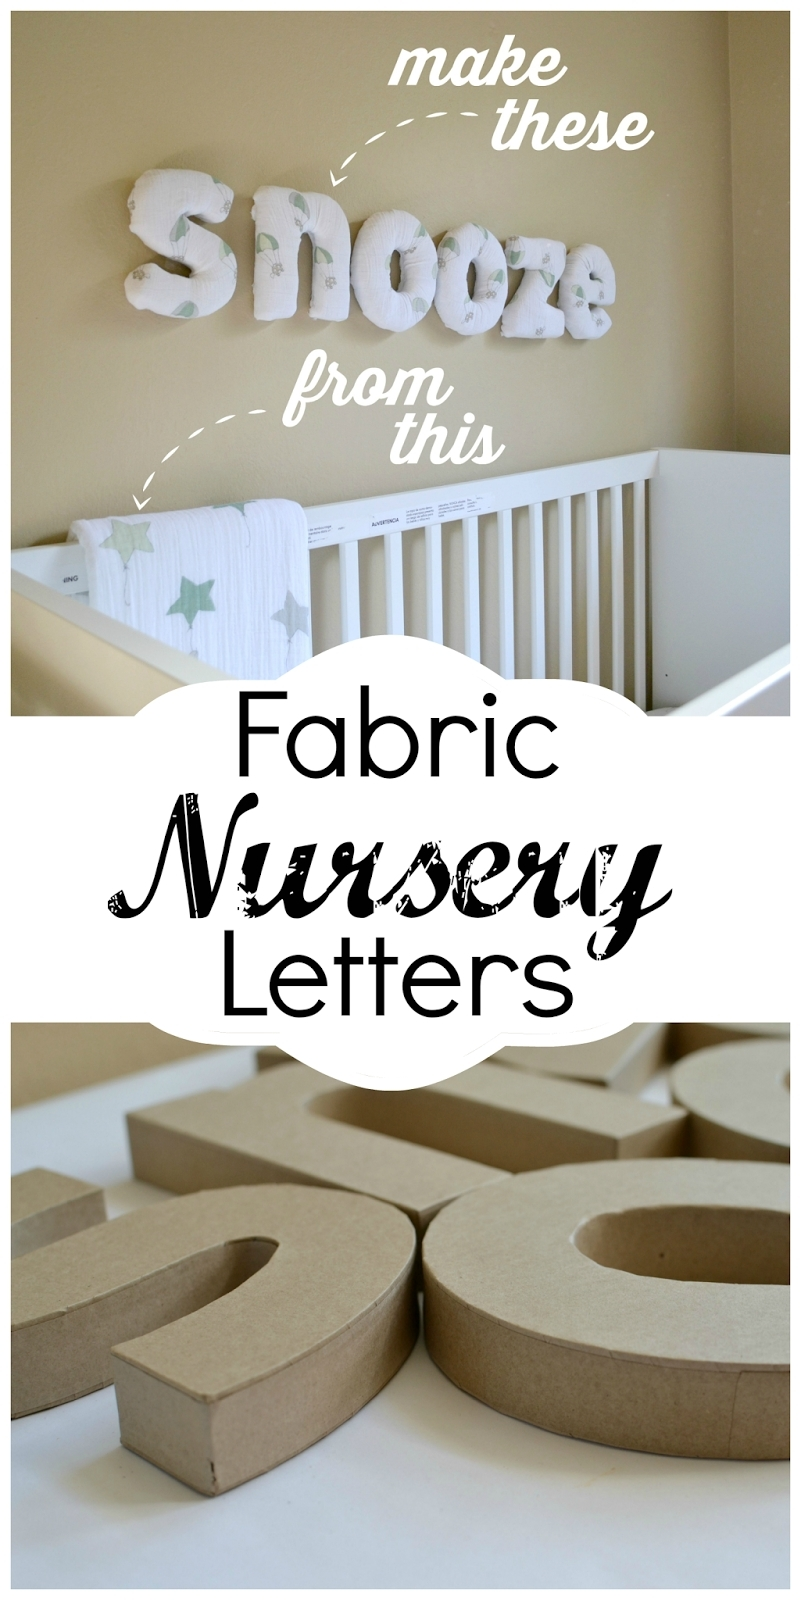 How To Make Easy Diy Fabric Letters For Your Nursery | Fabric Throughout Current Fabric Name Wall Art (View 10 of 15)